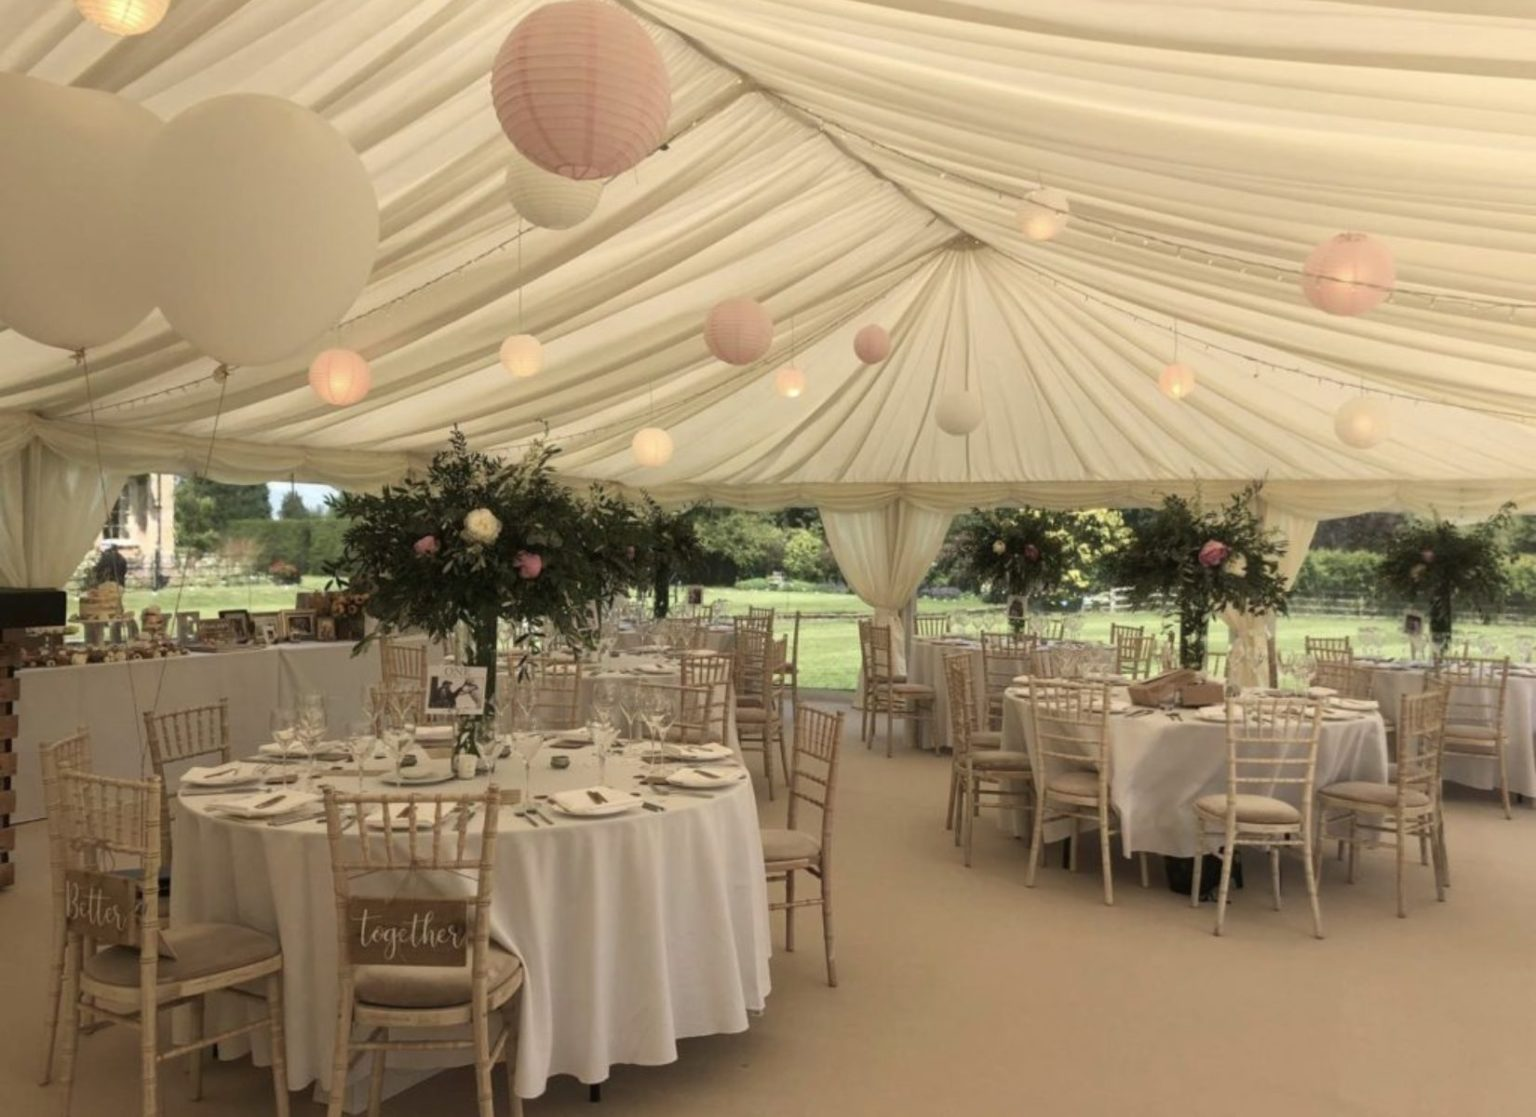 Lantern Lighting and Pleated Lining inside Wedding Marquee